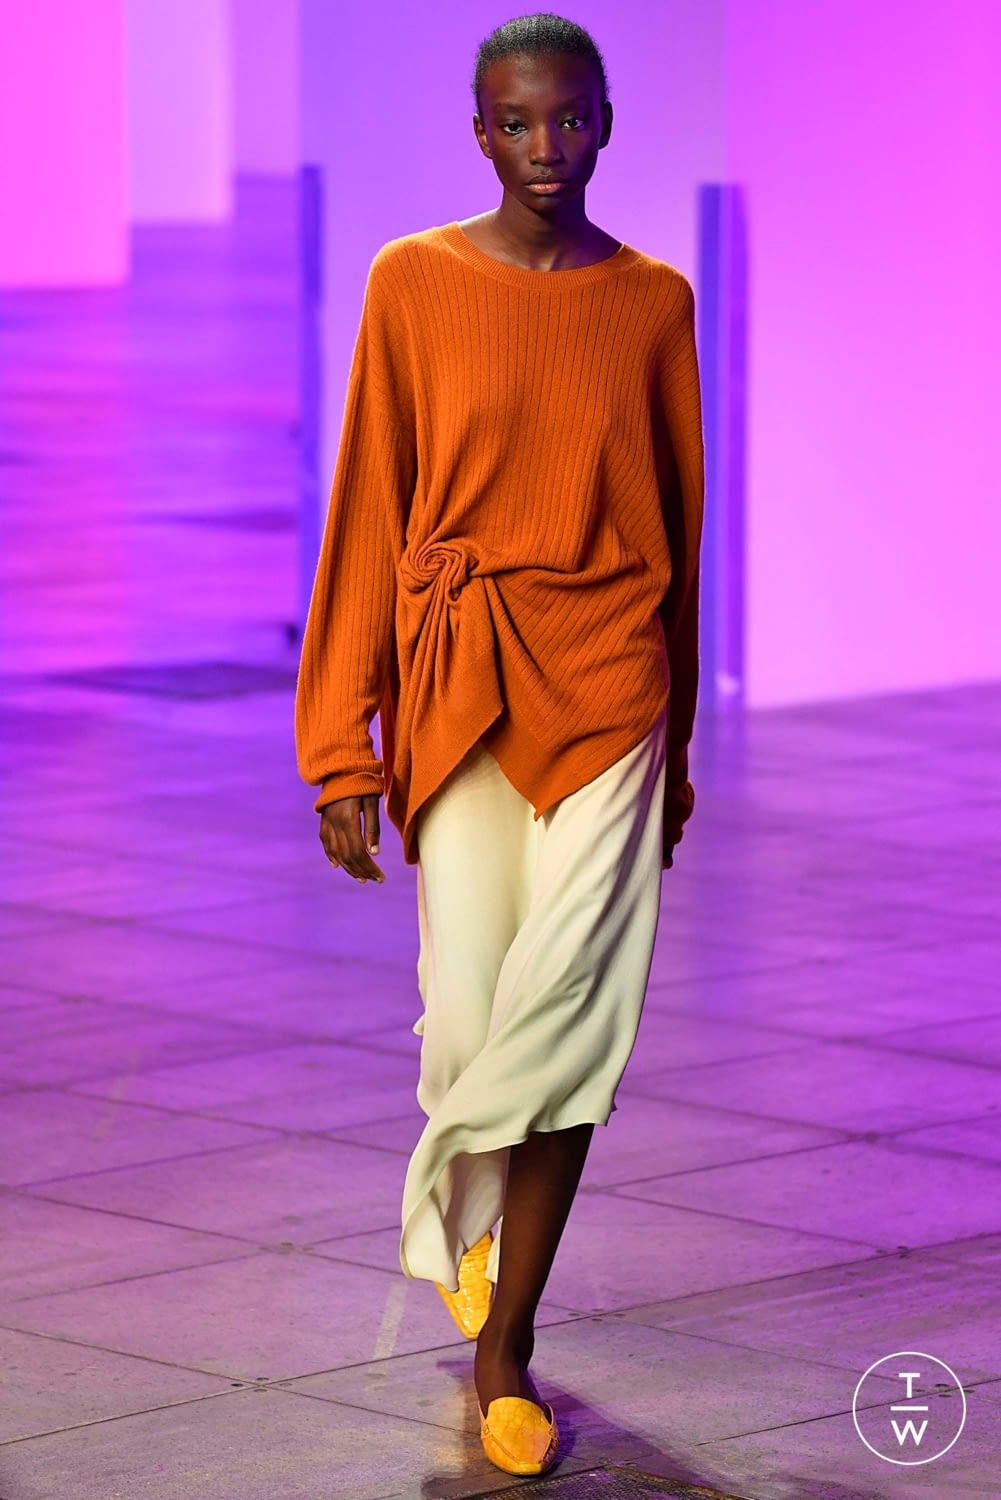 Pin on AW 20/21 Fashion Trends